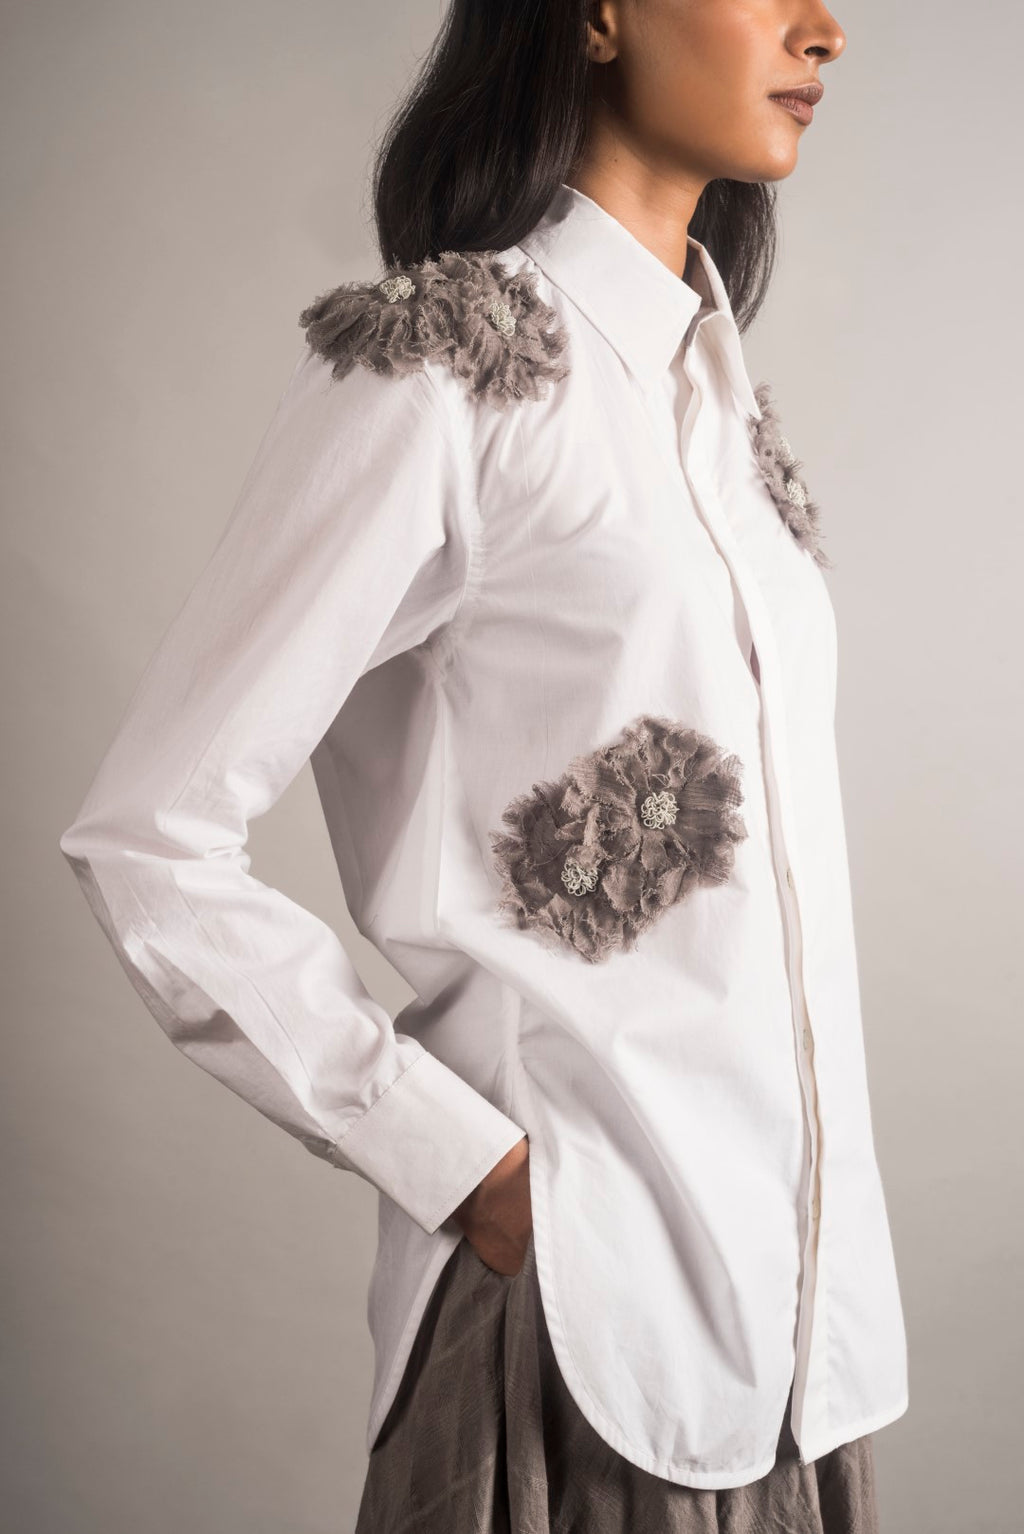 Embellished White Poplin Shirt - Auruhfy India